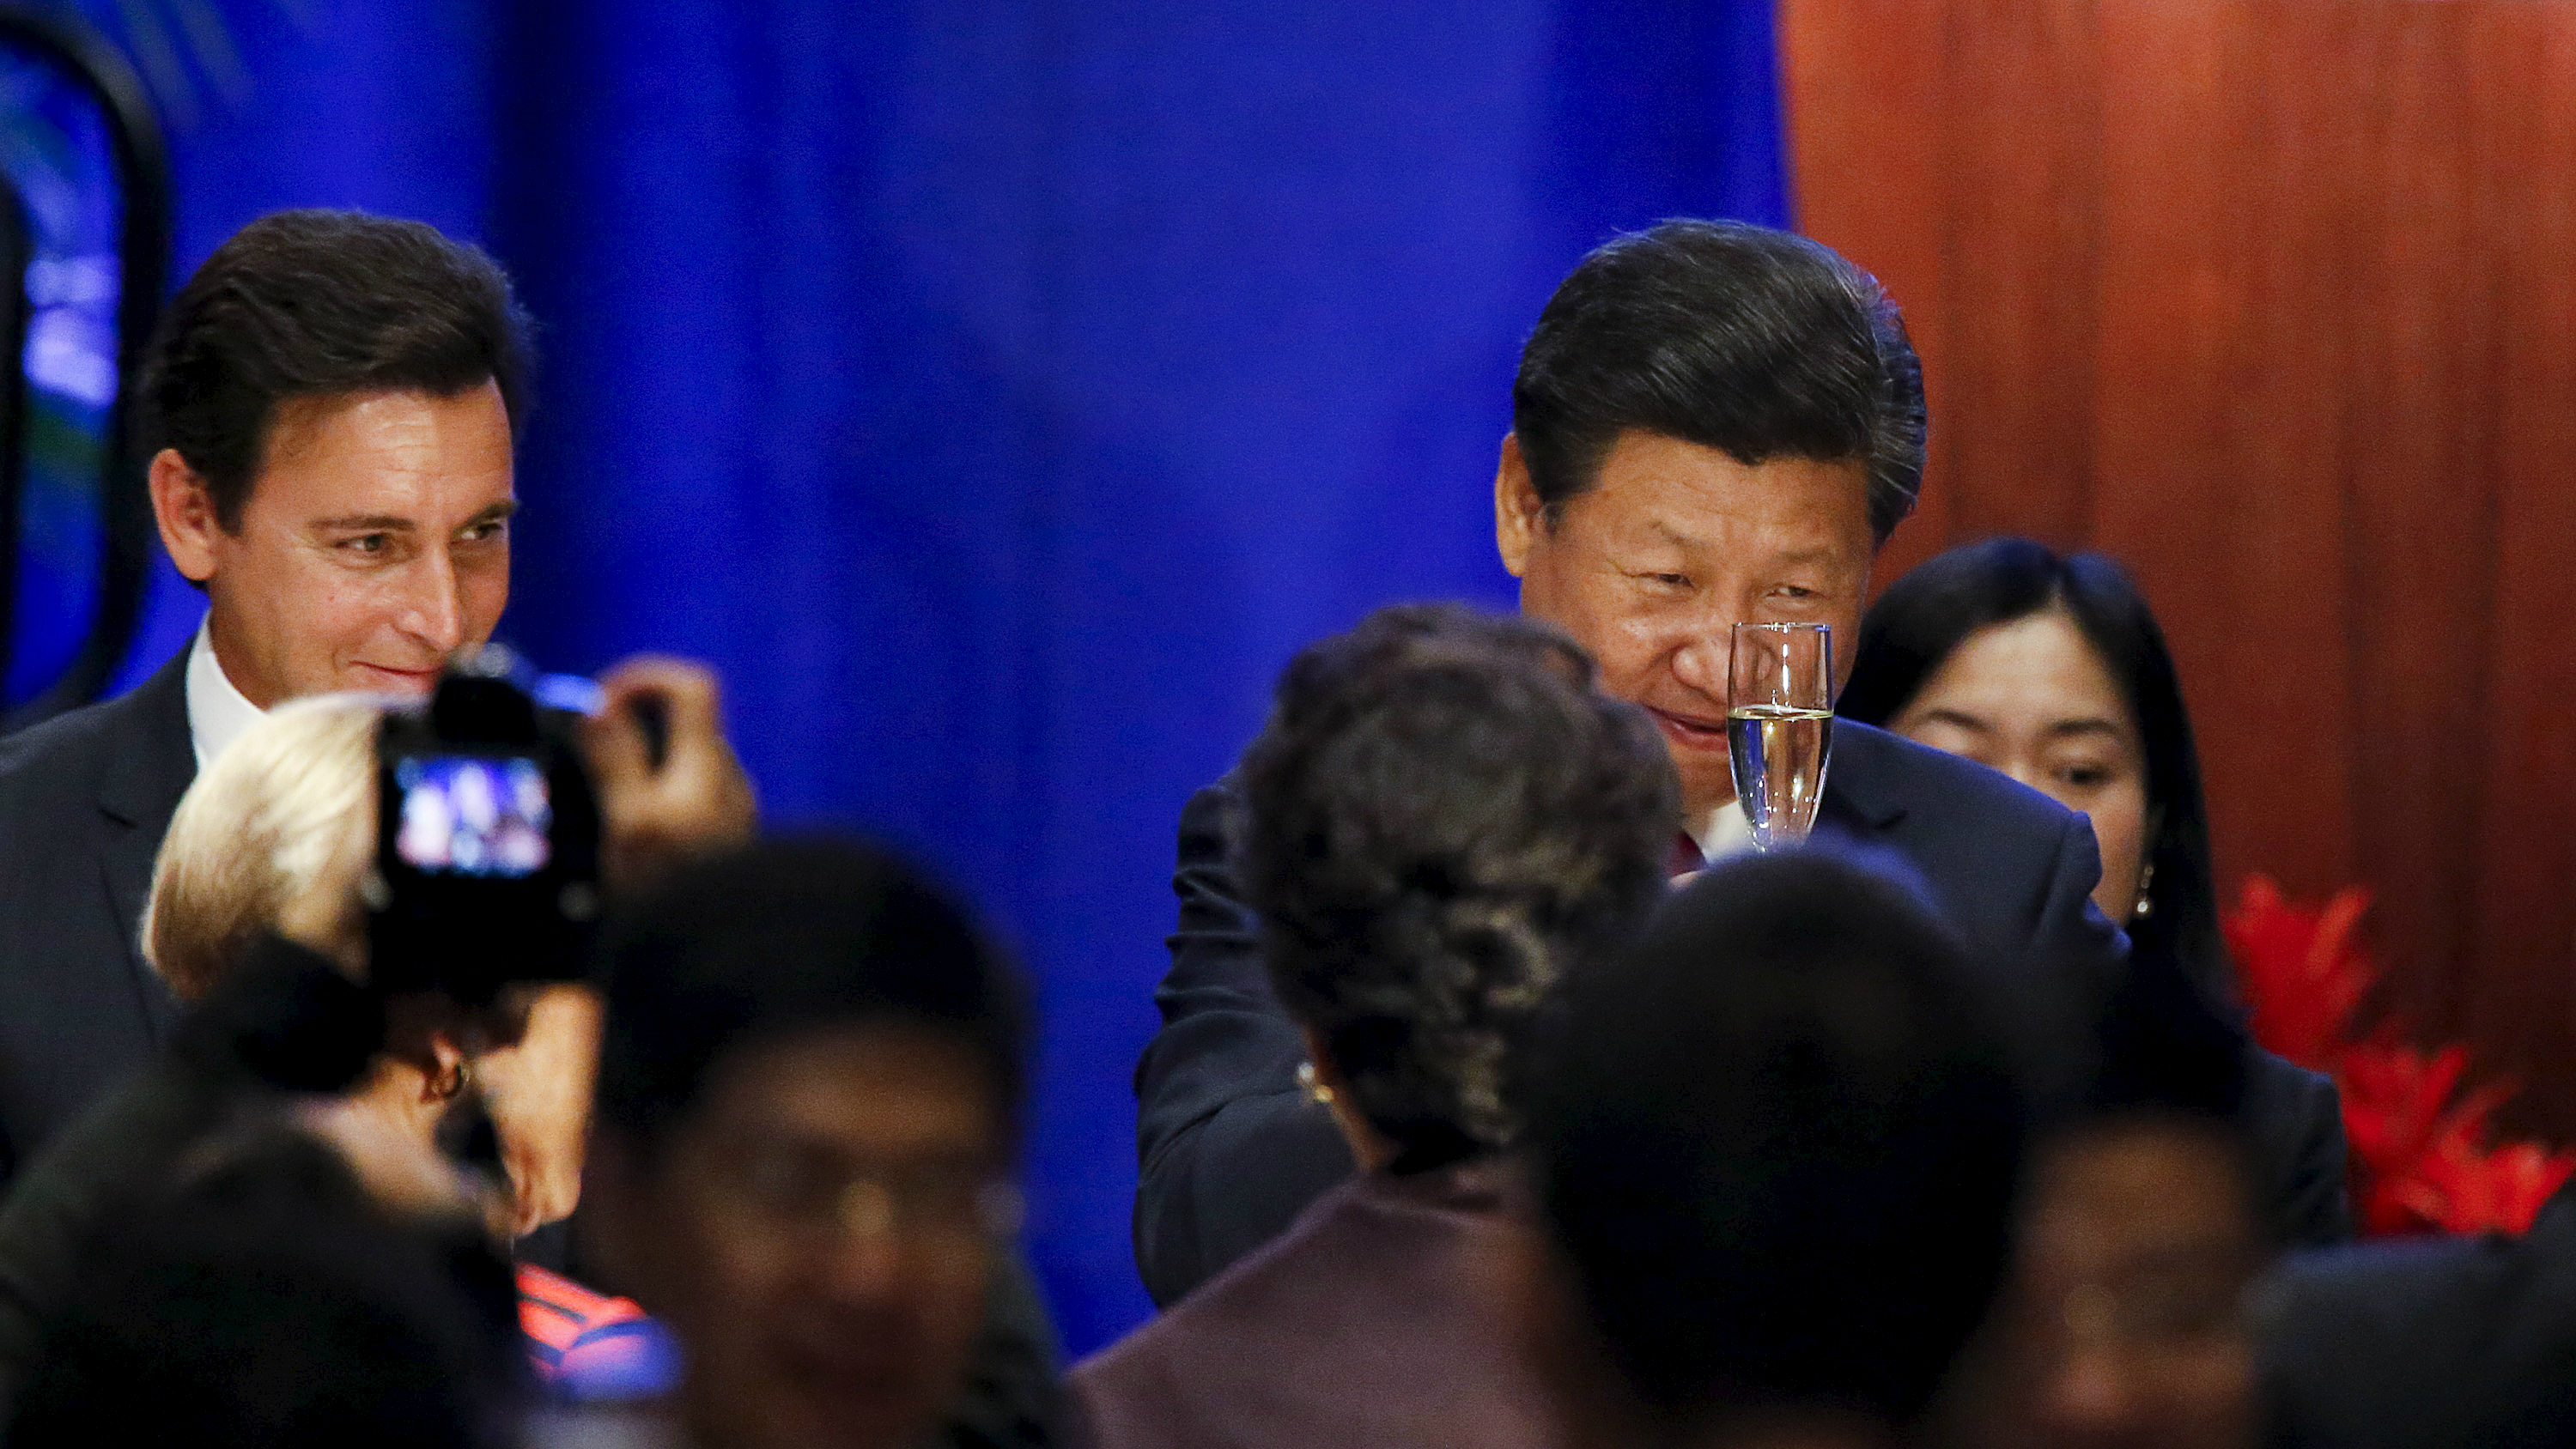 Chinese President Xi Jinping (R) raises his glass during a toast as Mark Fields (L), President and Chief Executive Officer of Ford Motor Company, looks on during a dinner reception in Seattle, Washington September 22, 2015.